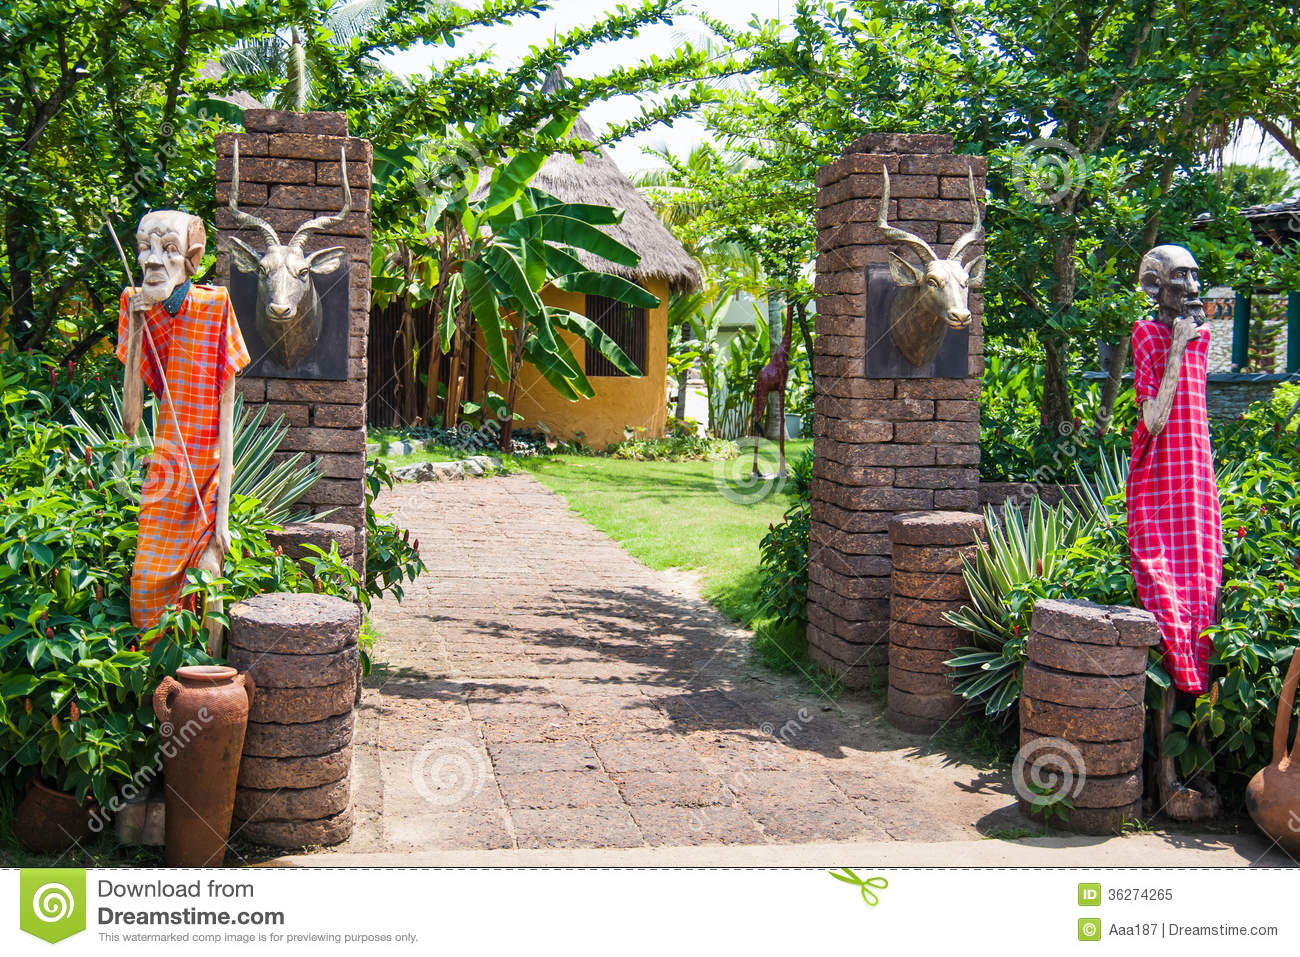 South african garden design stock image image 36274265 for South african garden designs